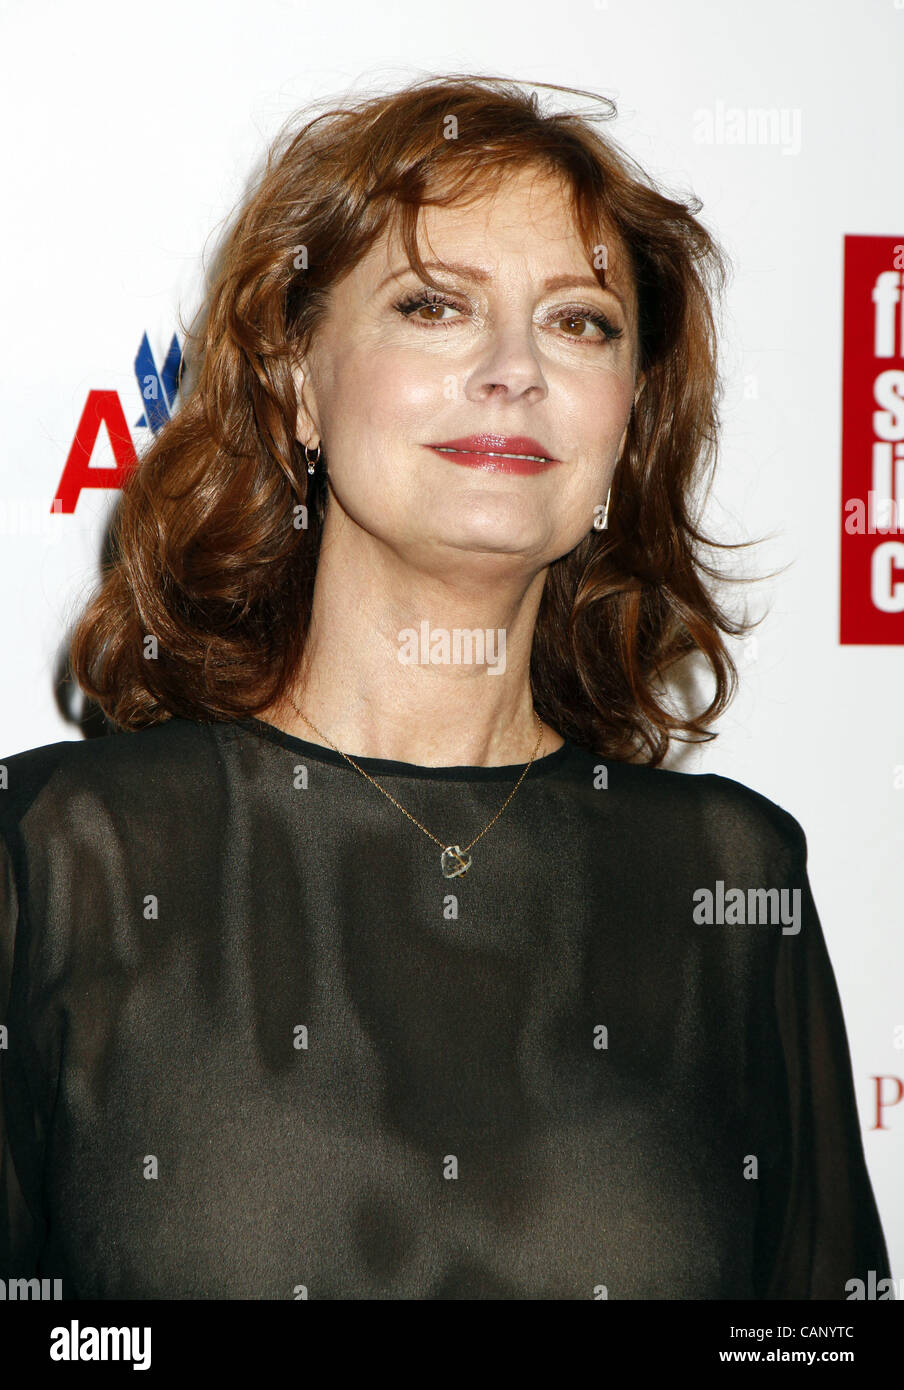 April 2, 2012 - New York, New York, U.S. - Susan Sarandon arrives for the Film Society of Lincoln Center' 39th - Stock Image